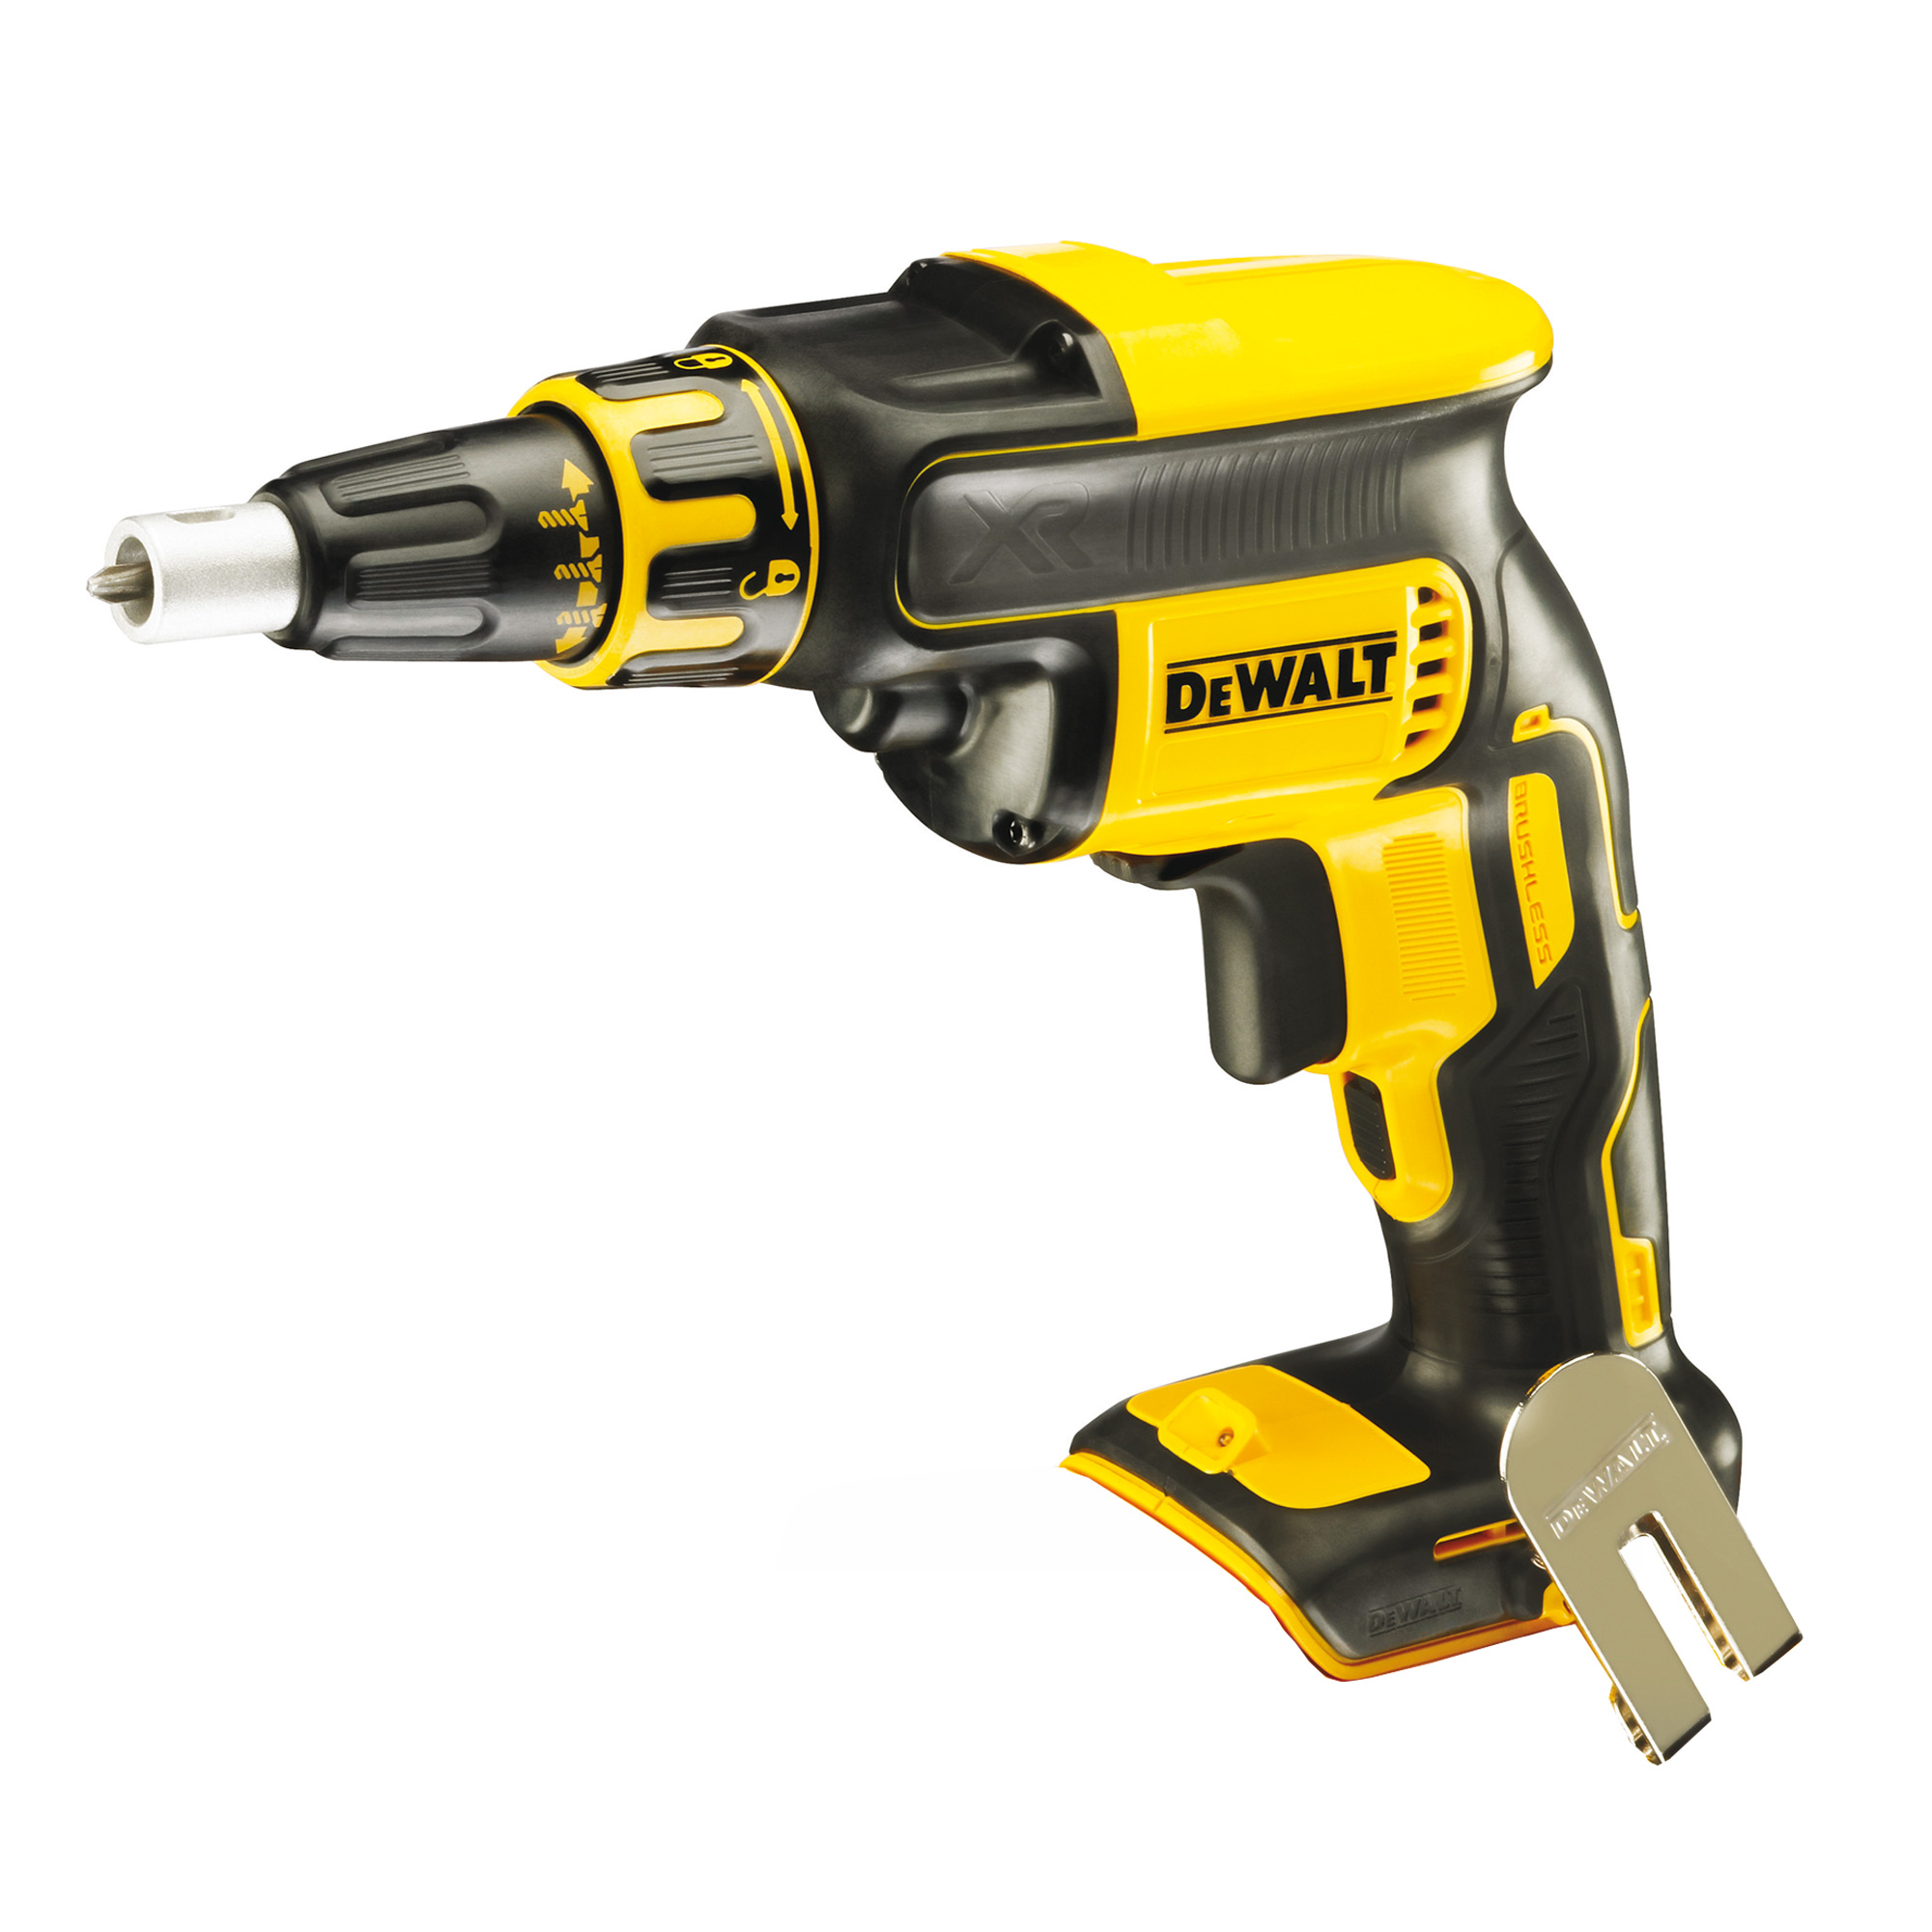 dewalt dcf620 dewalt 18v li ion xr drywall screwdriver. Black Bedroom Furniture Sets. Home Design Ideas